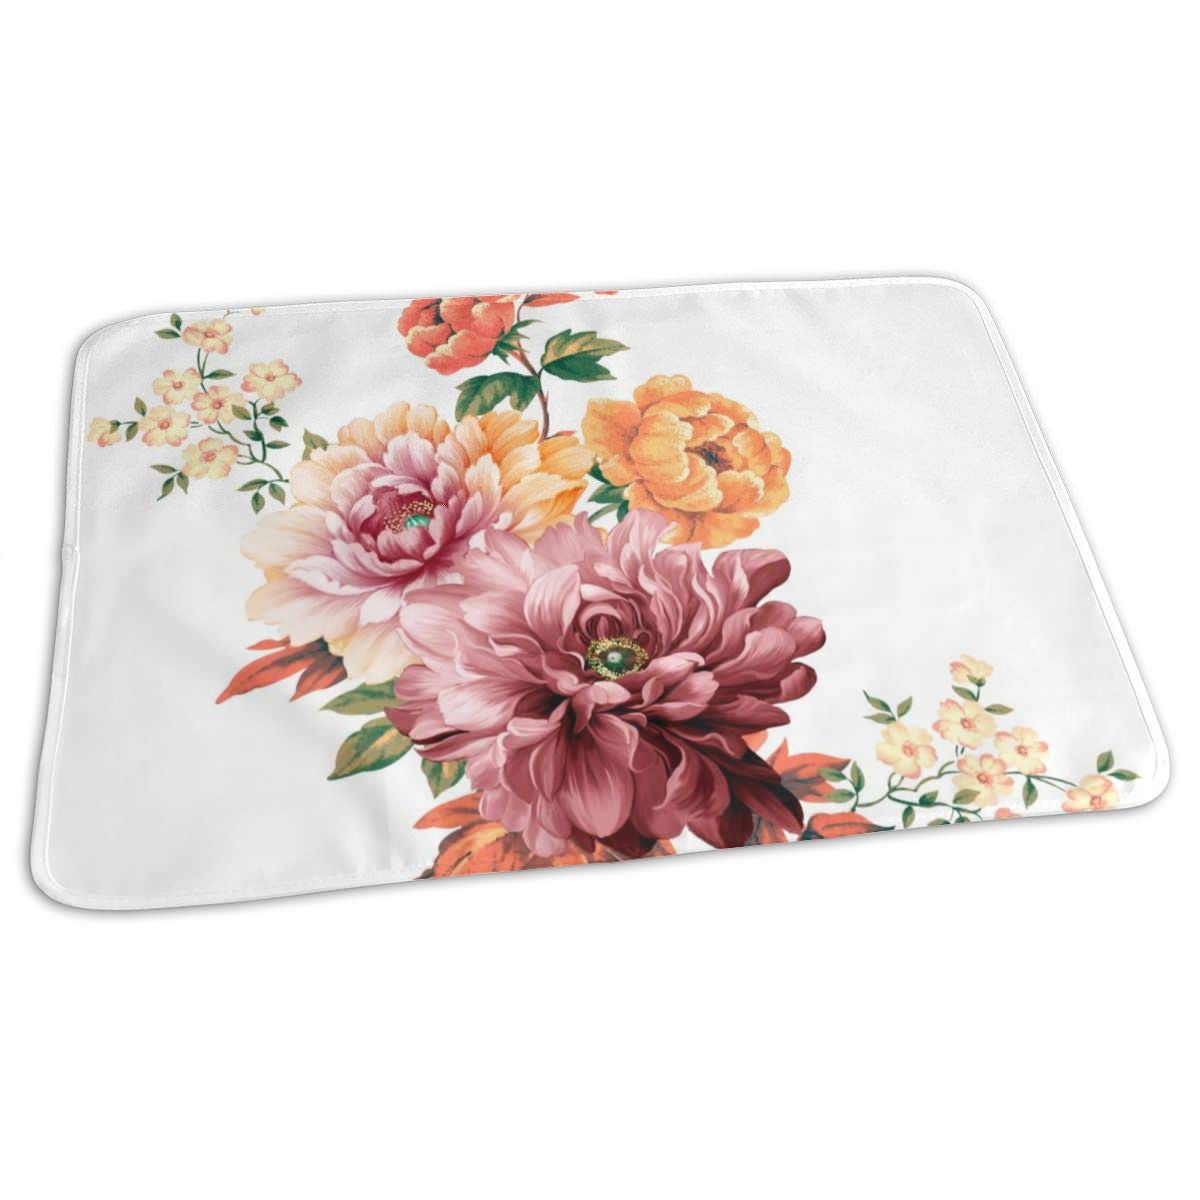 Osvbs Lovely Baby Reusable Waterproof Portable Flowers are Full of Romance Changing Pad Home Travel 27.5''x19.7'' by Osvbs